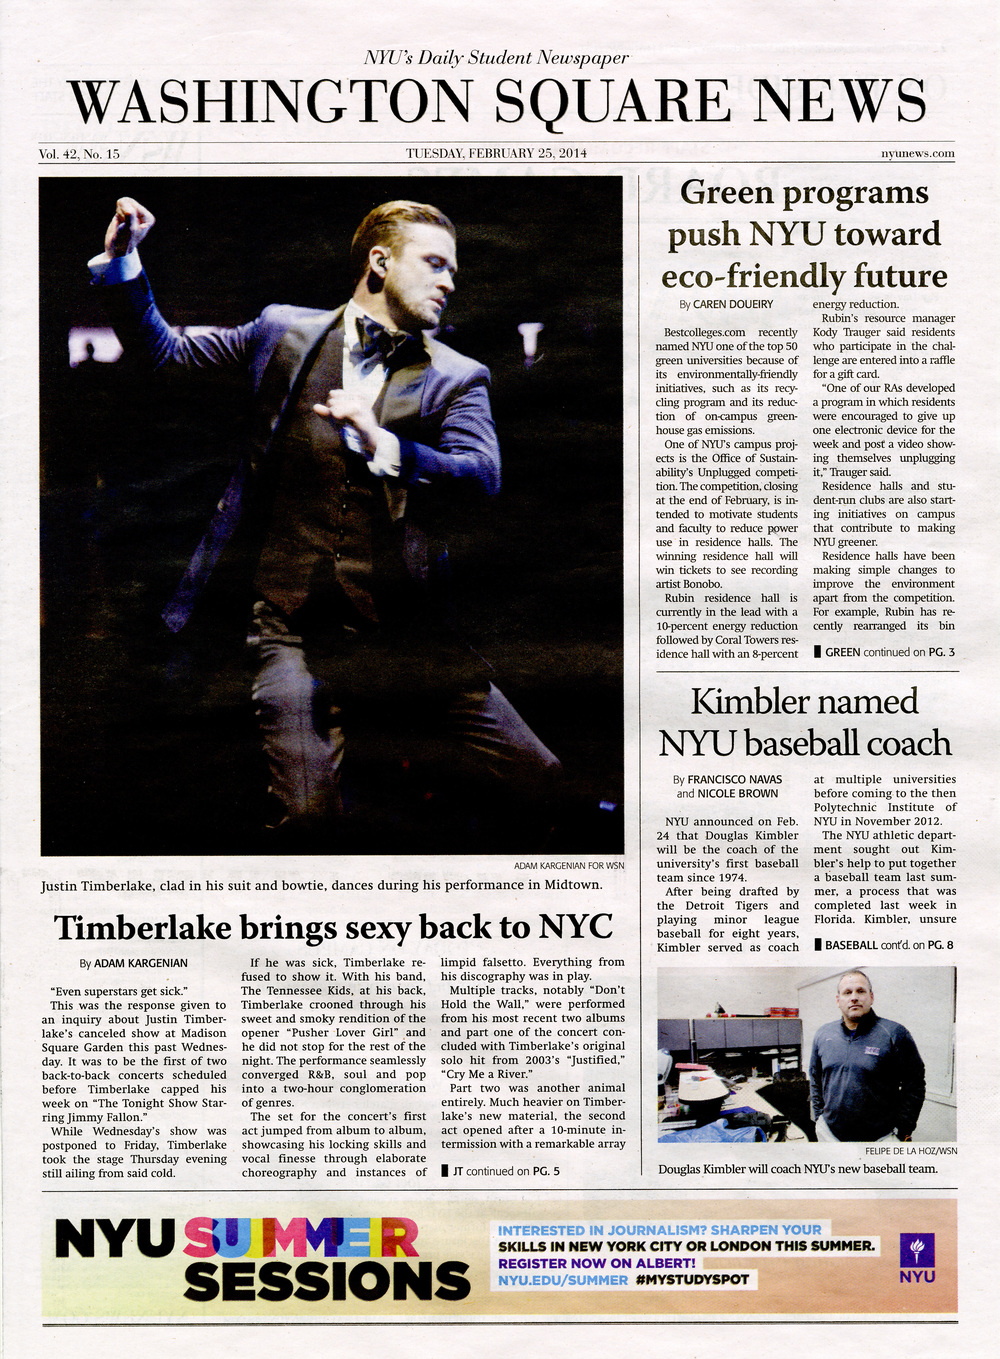 Cover of The Washington Square News, Thursday, February 25, 2014